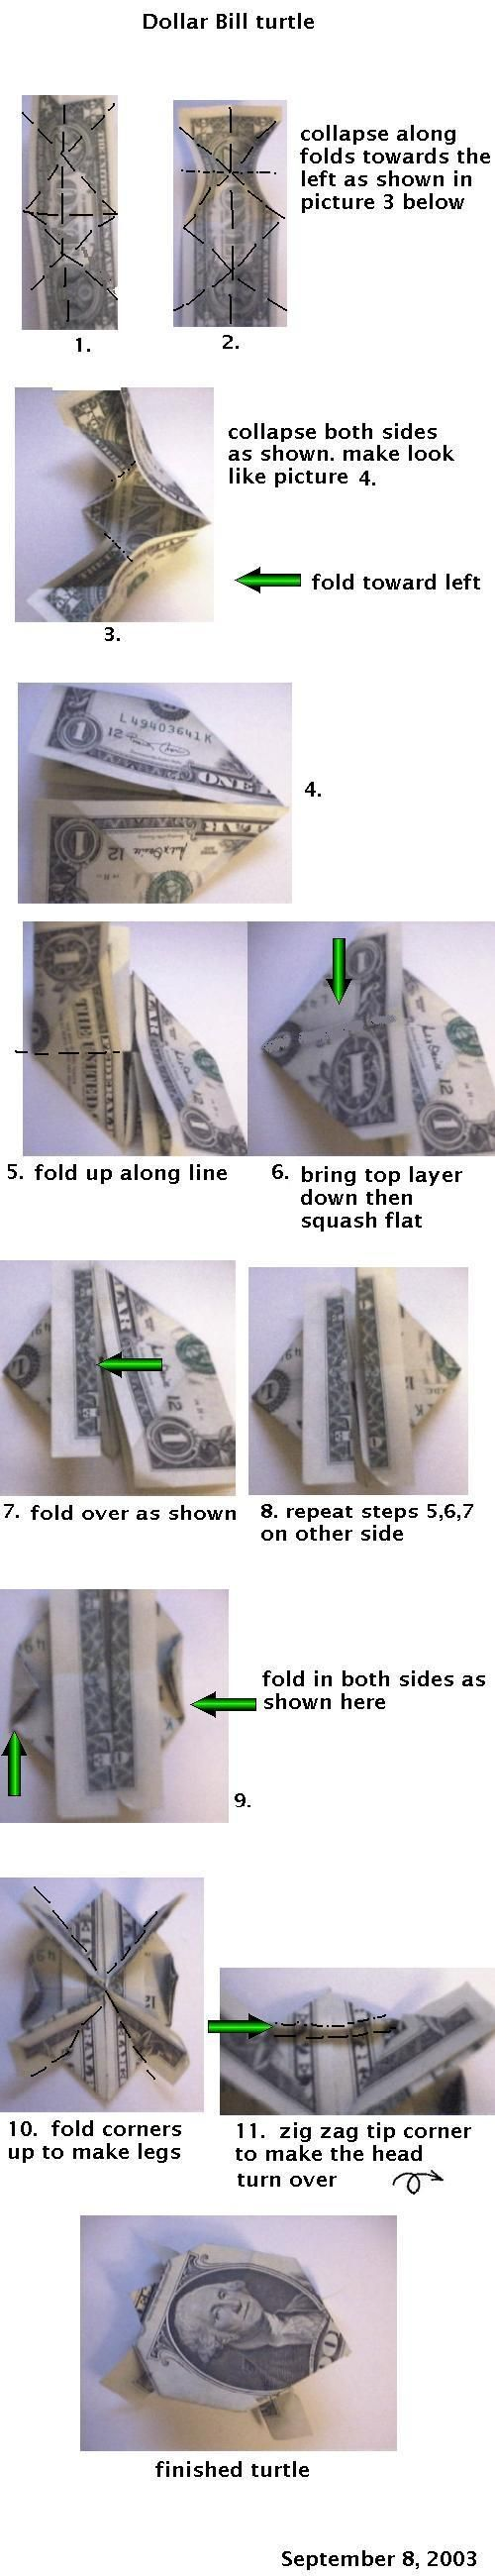 Money folding origami embroidery origami diy projects money folding origami embroidery origami jeuxipadfo Image collections